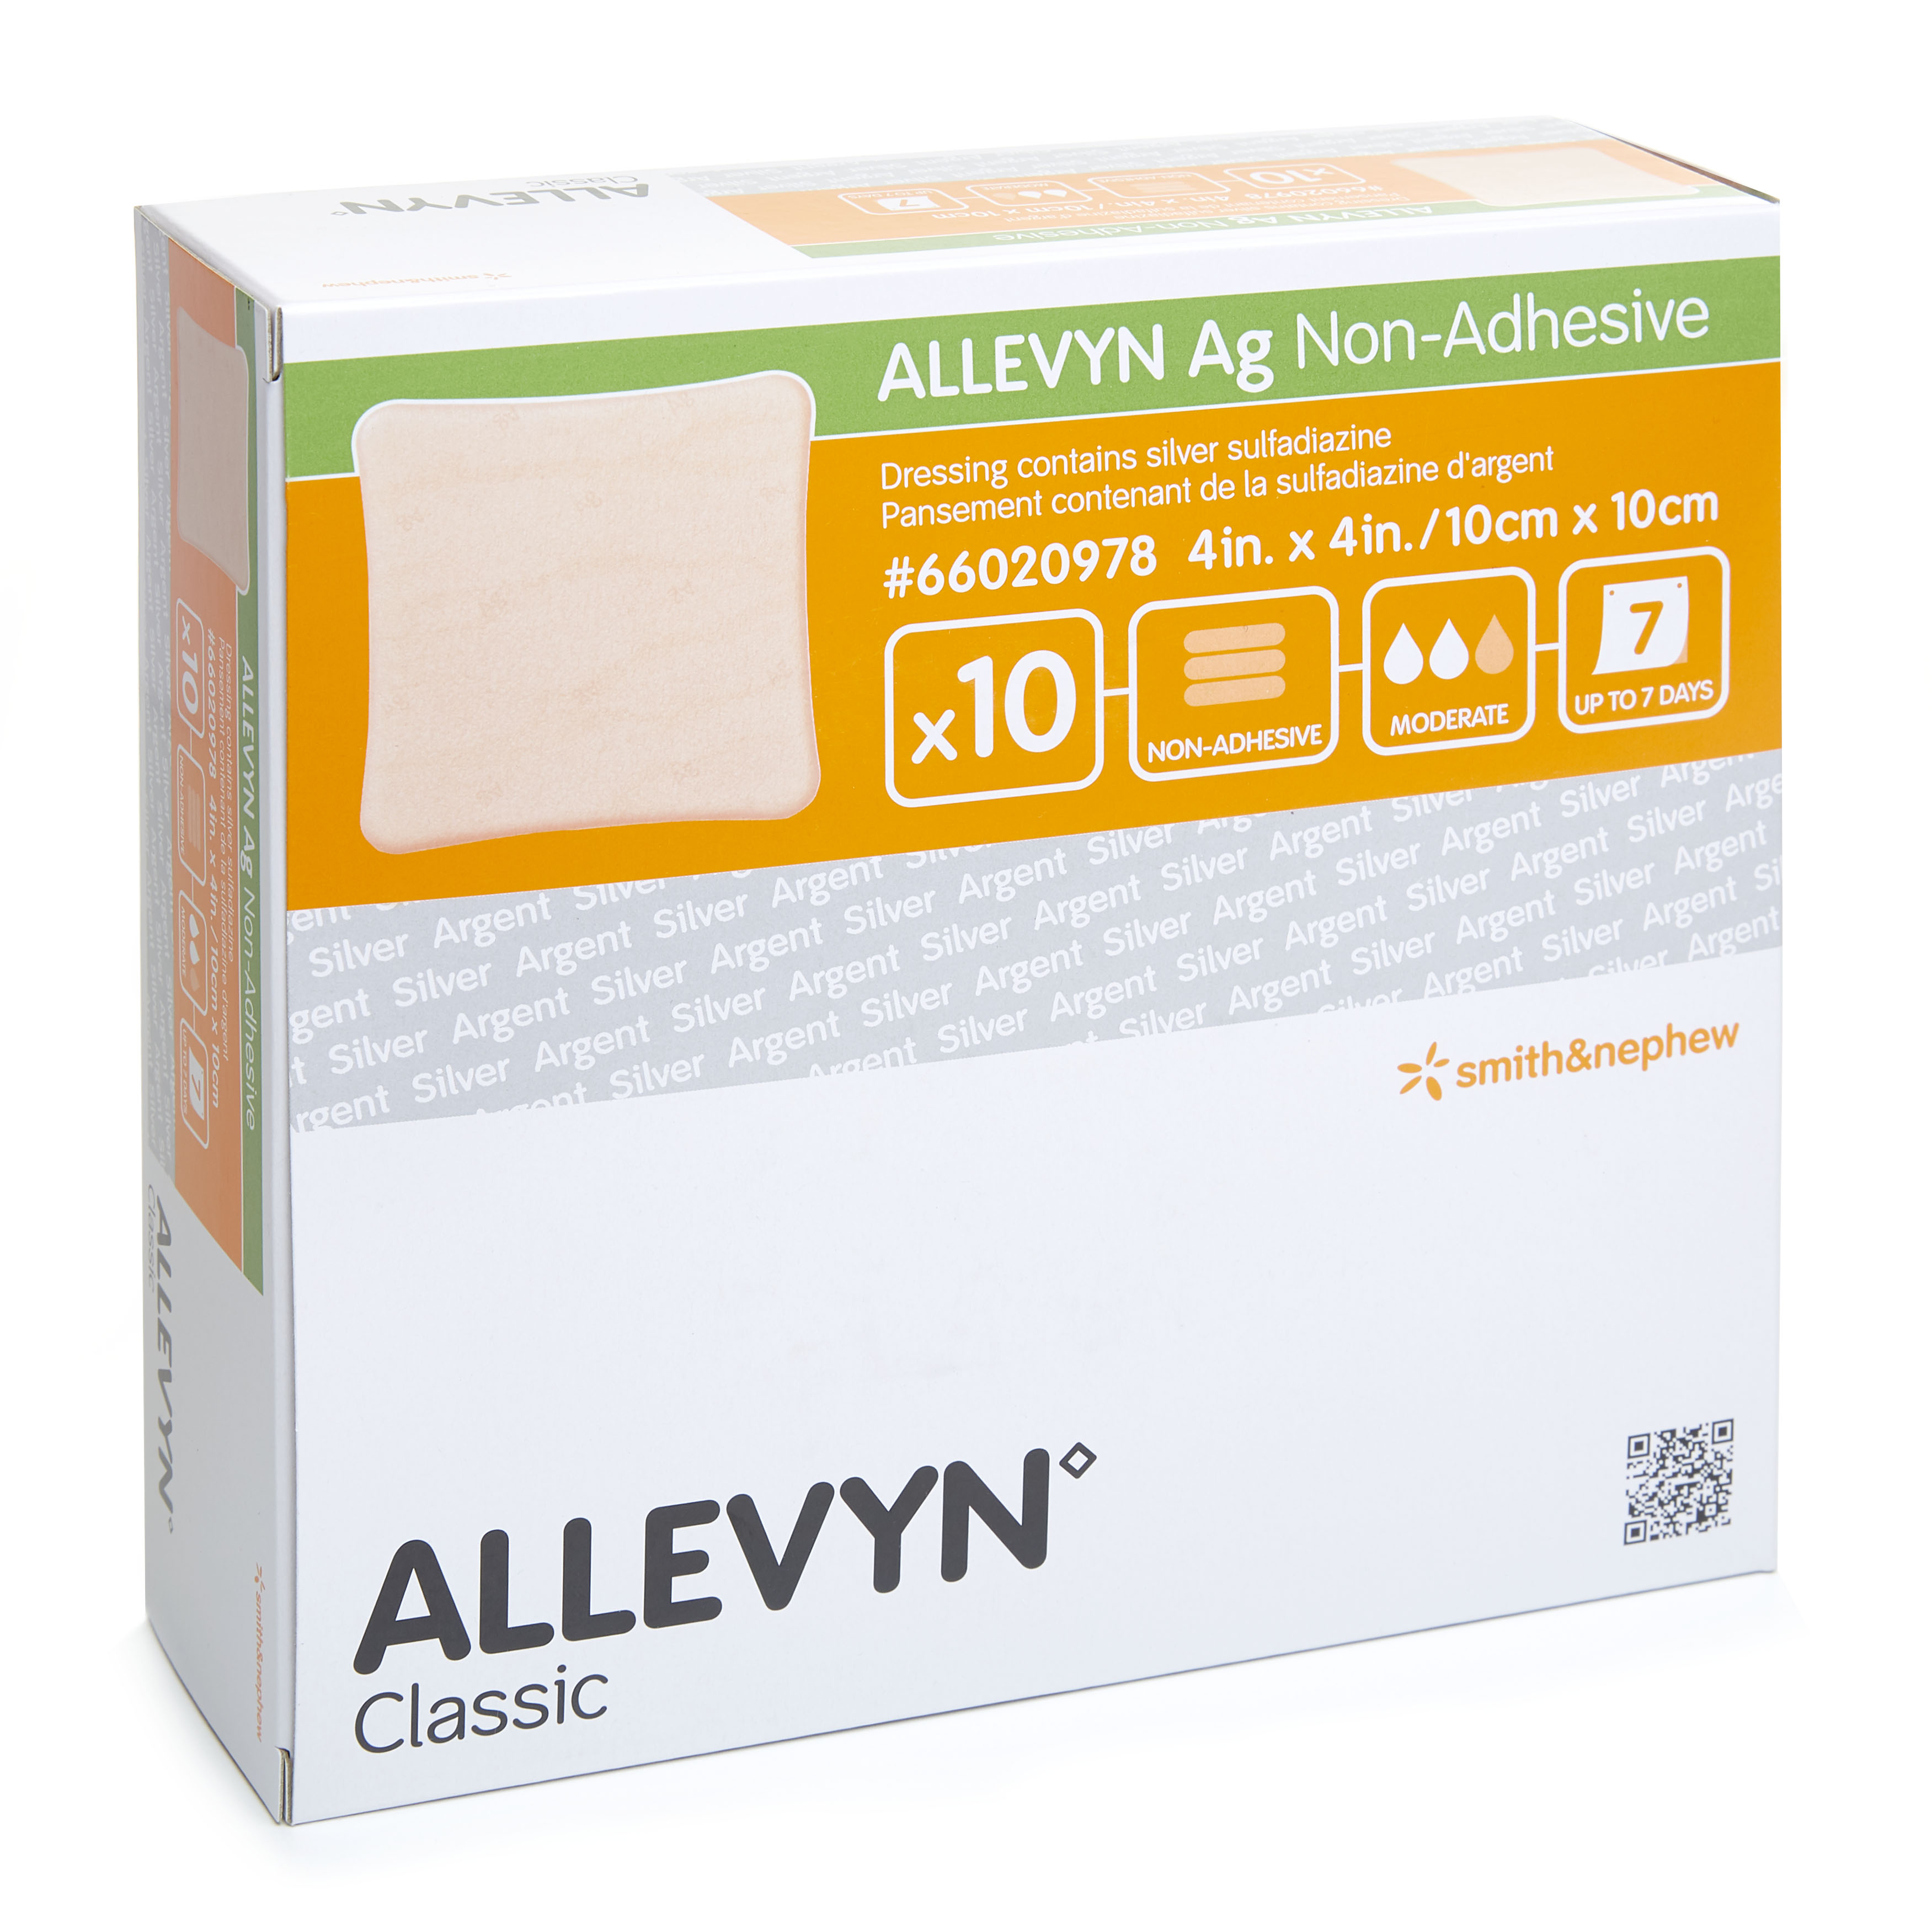 Allevyn Ag Non-Adhesive